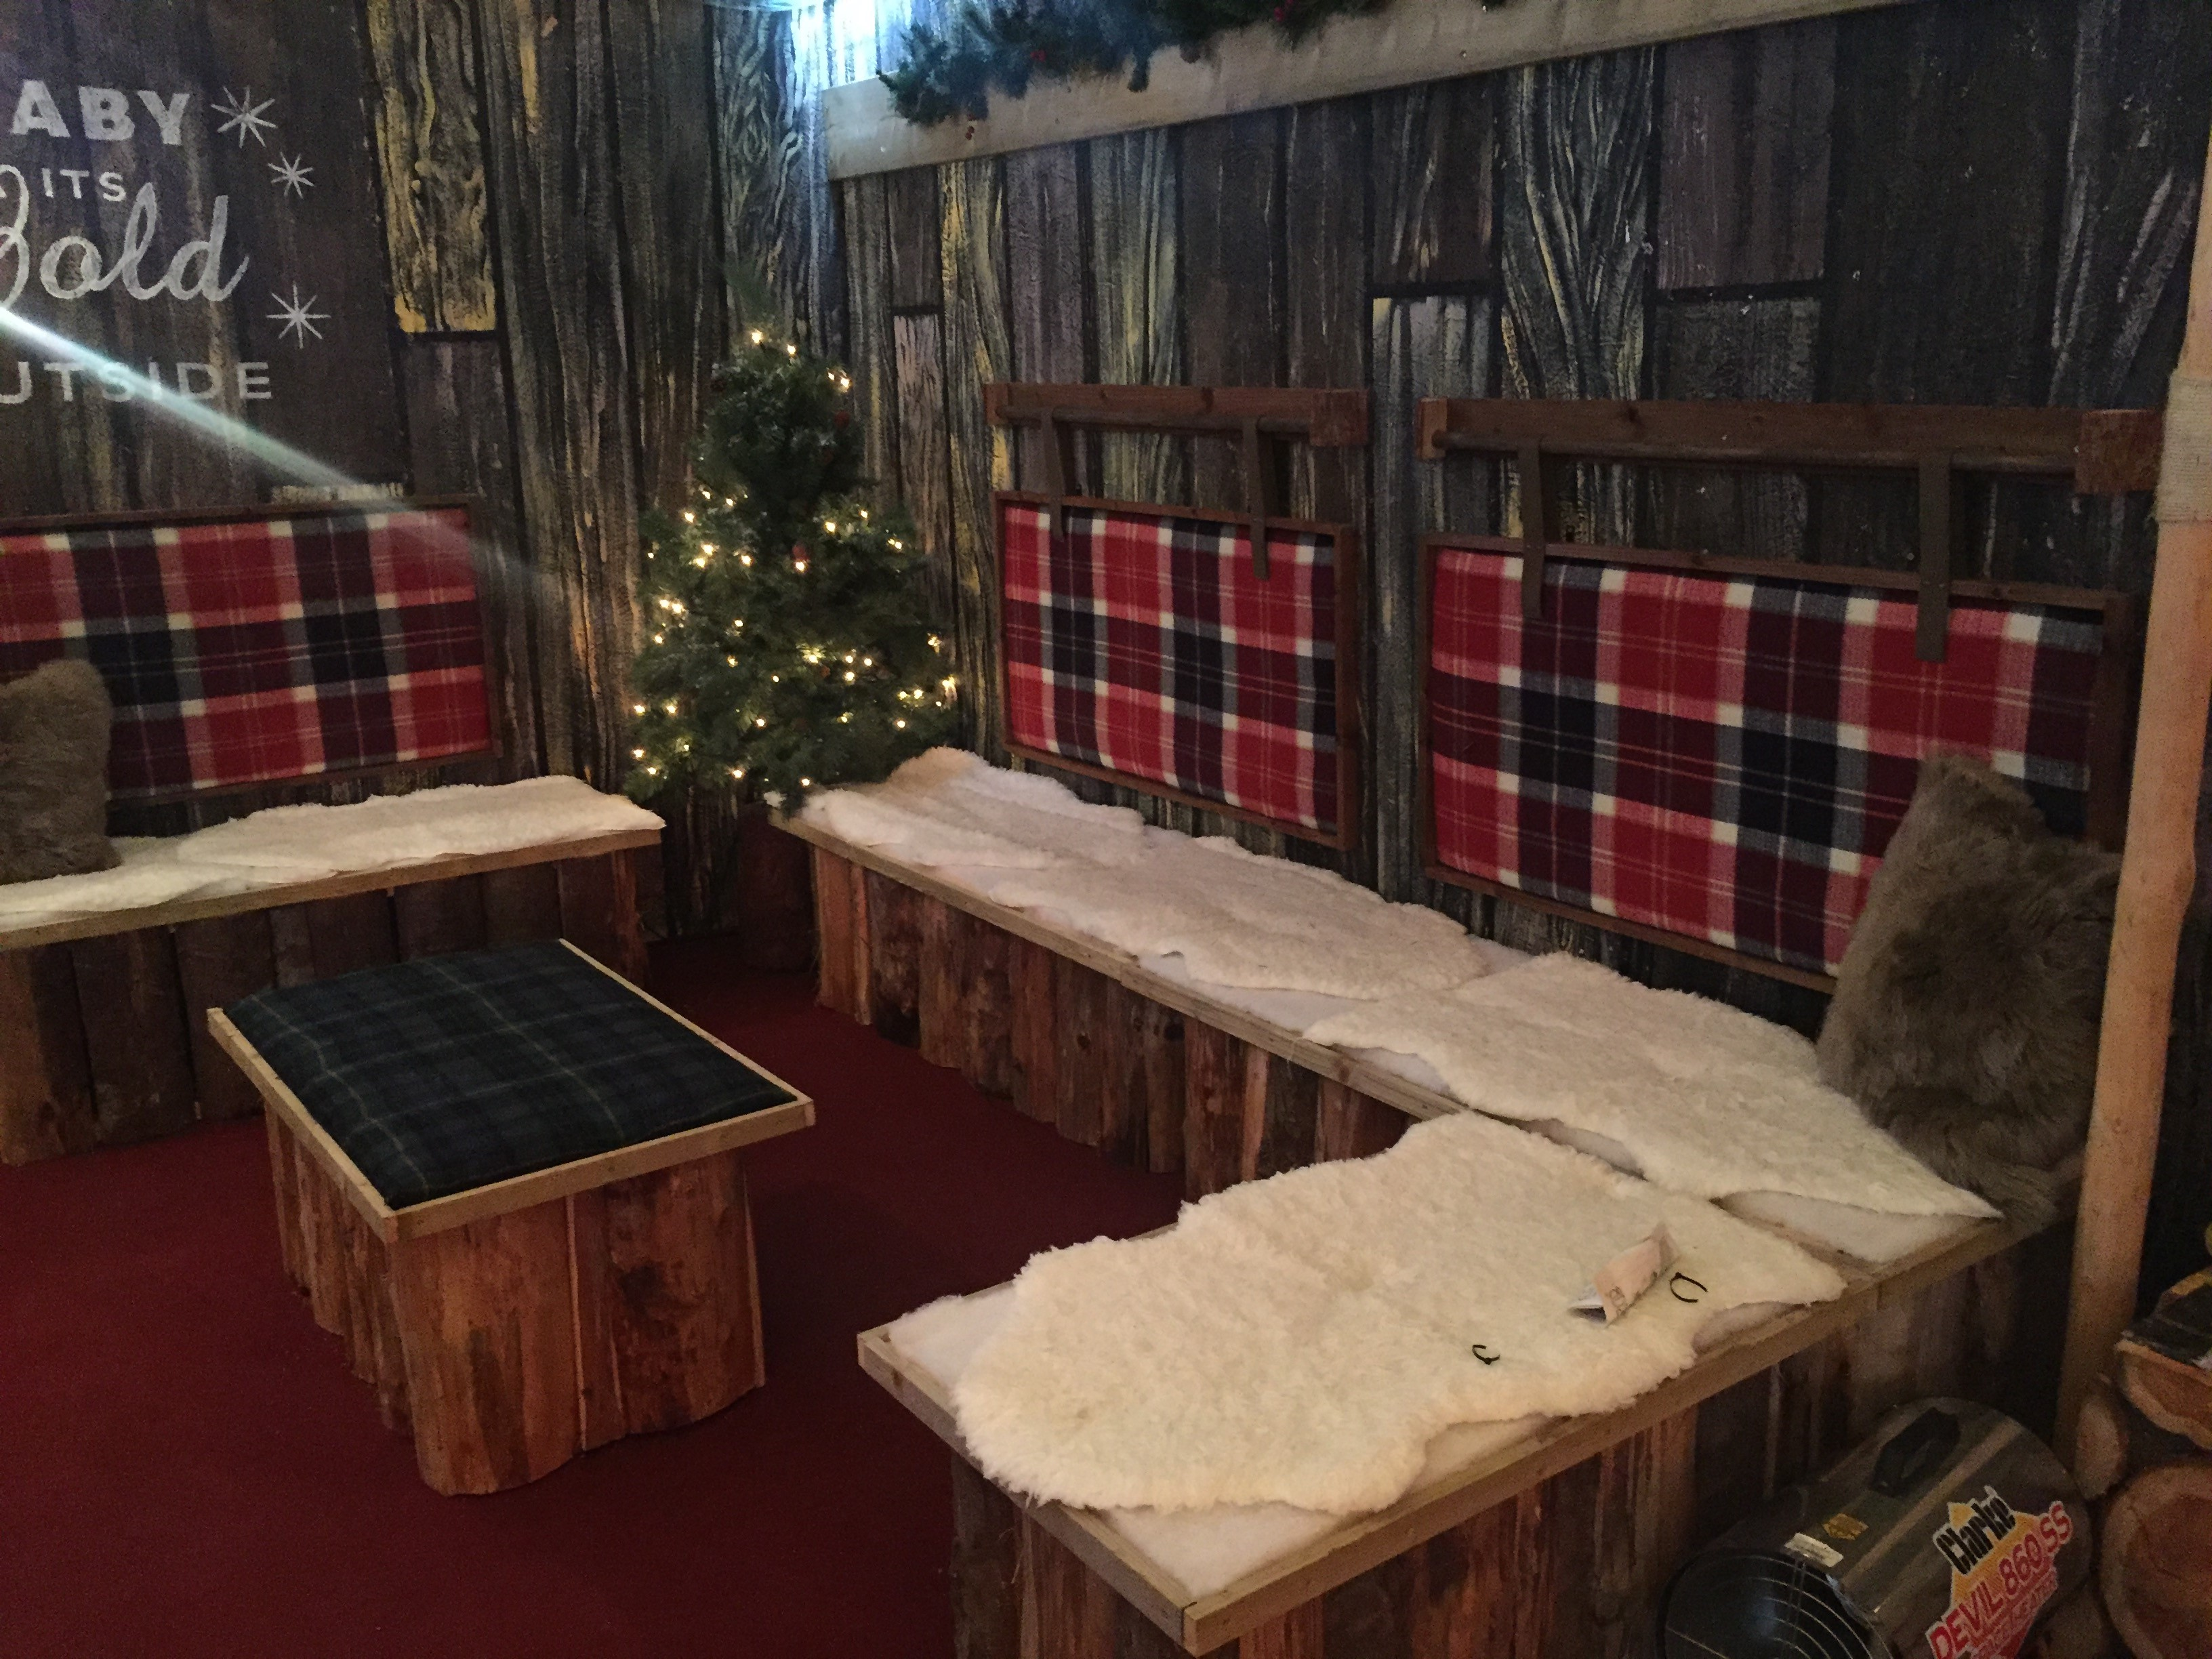 Apres Ski Chalet Seating, Bournemouth Ice Rink